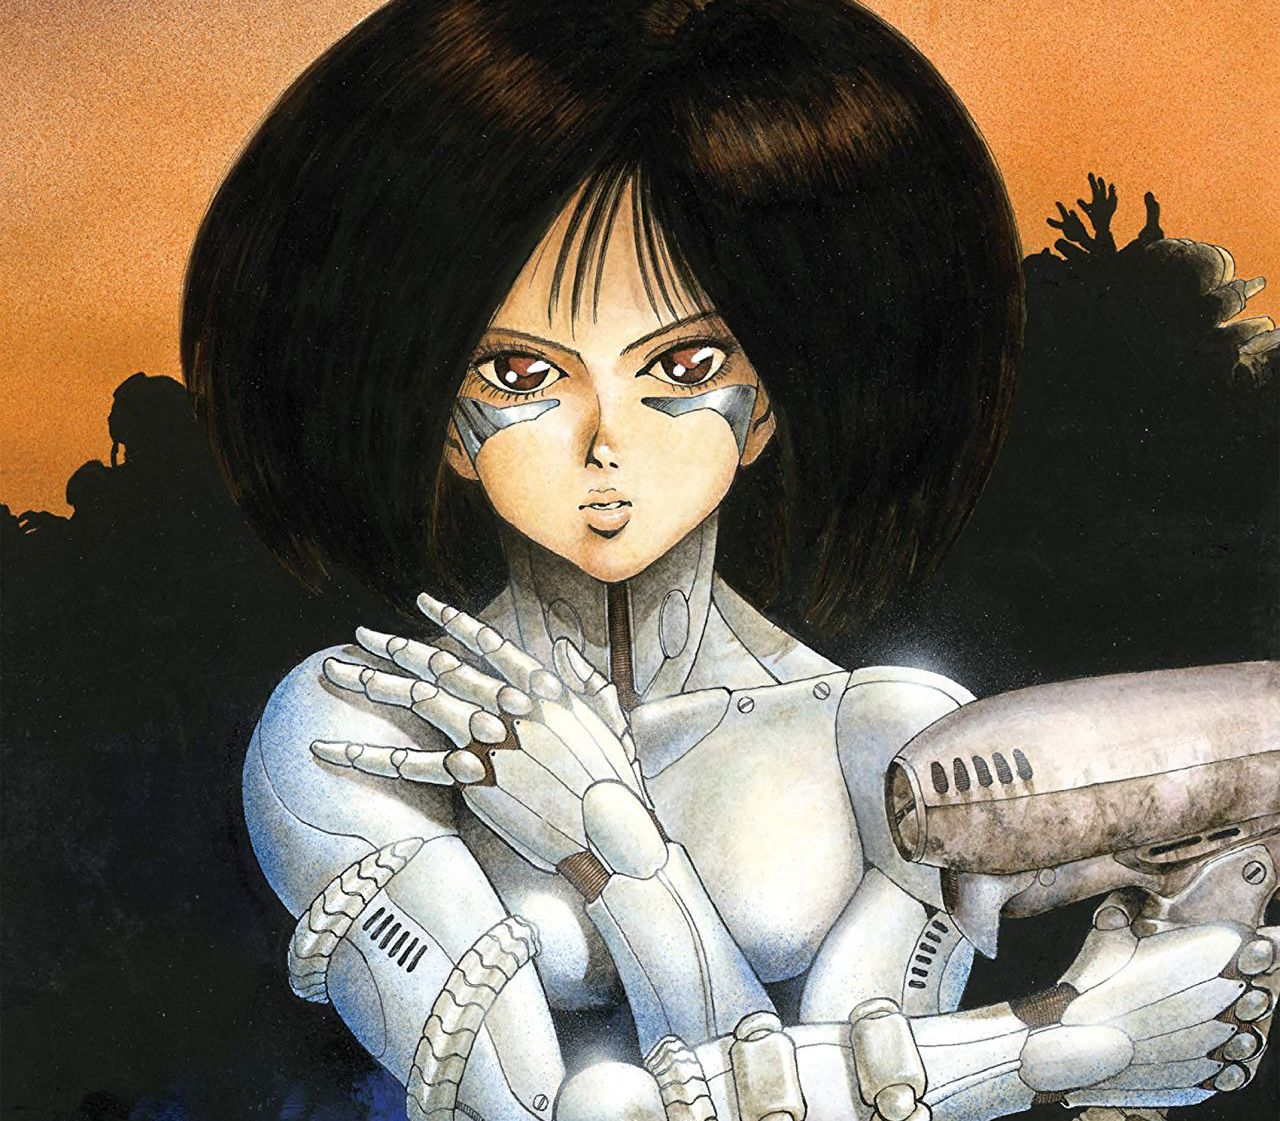 'Battle Angel Alita: Deluxe Edition Vol. 1' review: One of the best mangas of all time in a great new package